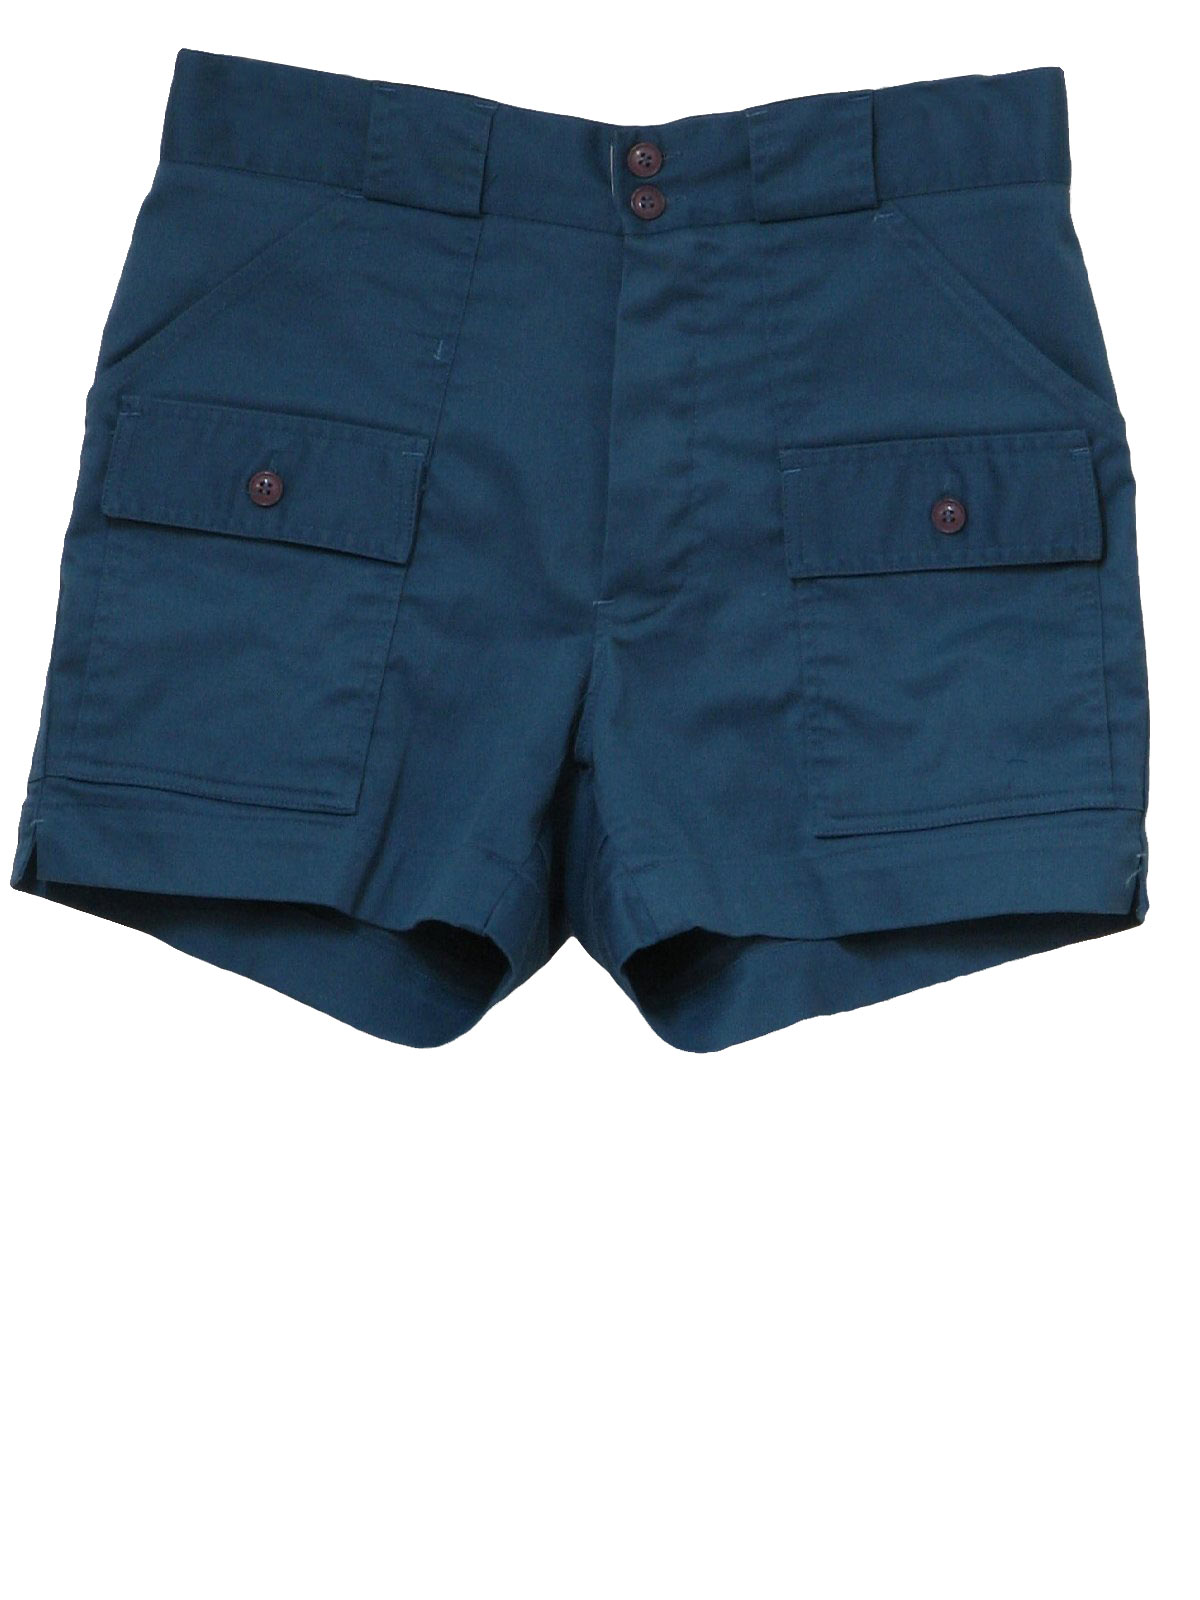 Seventies Vintage Shorts: Late 70s -Sportif USA- Mens dusty blue ...